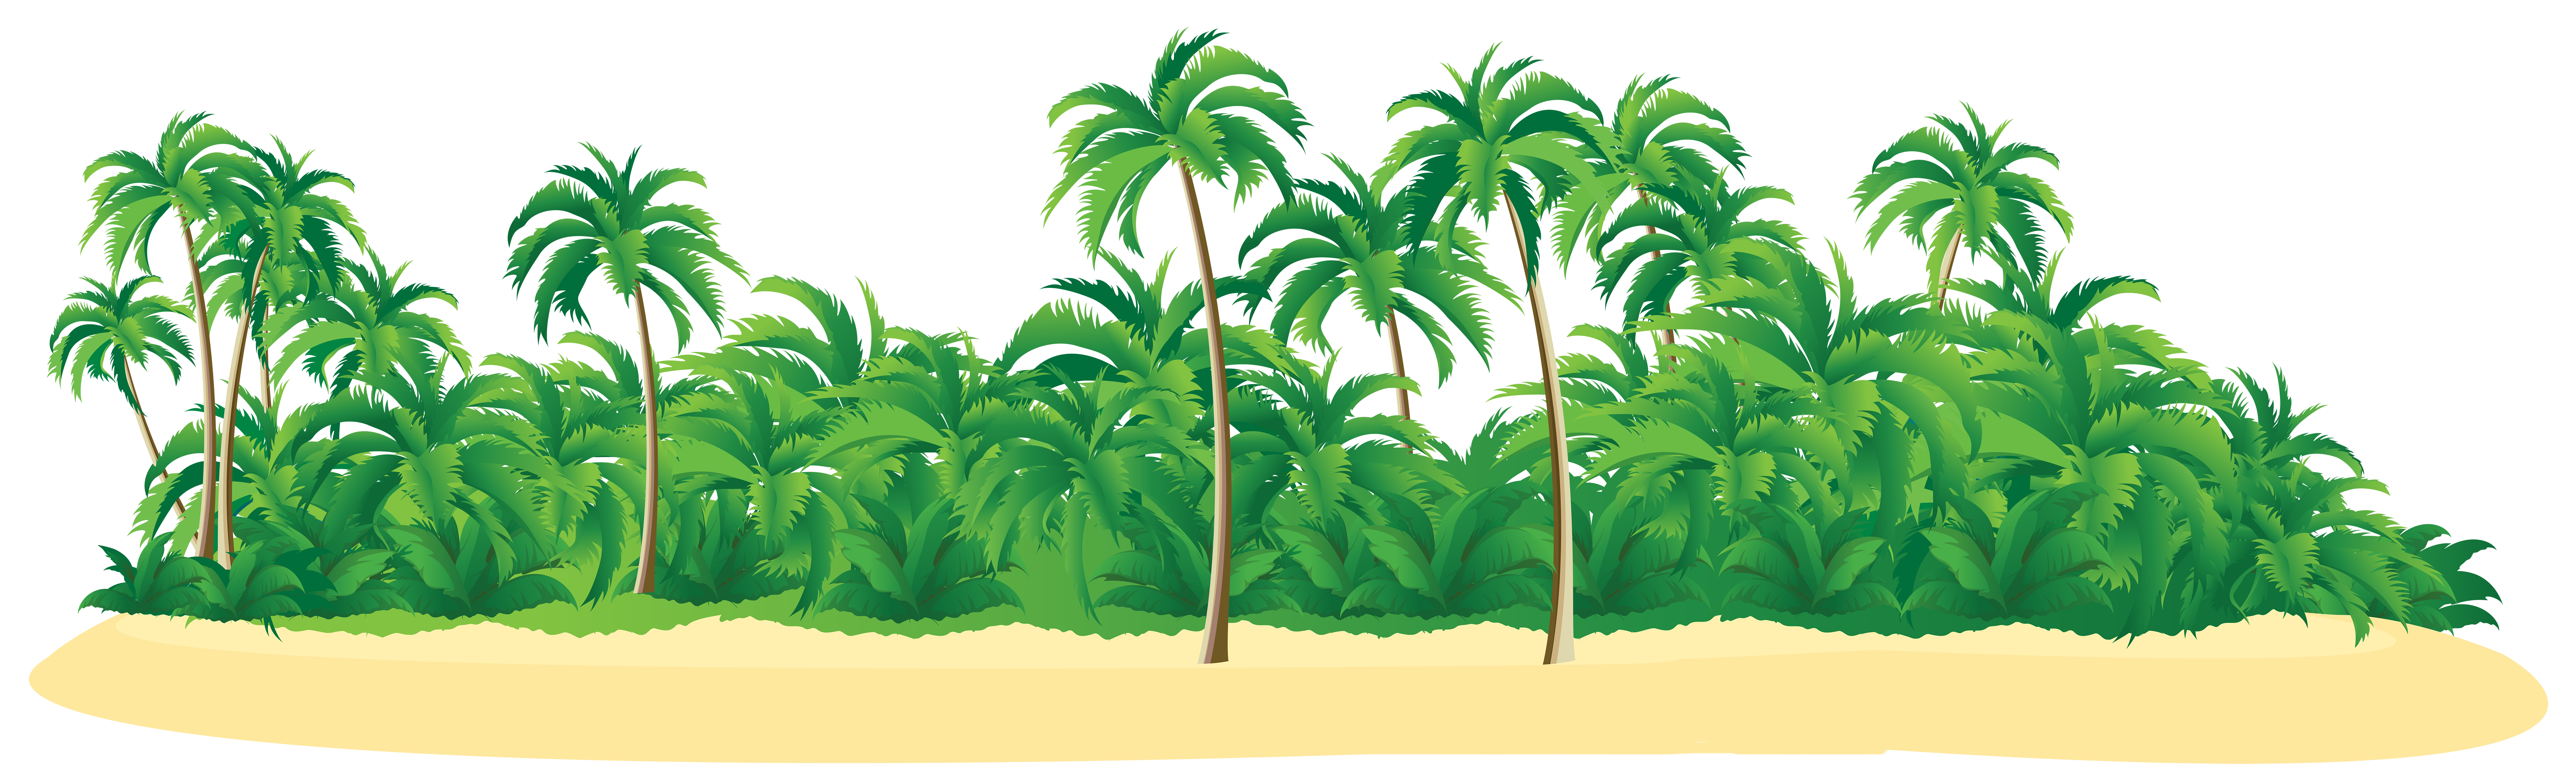 Summer island with palm. Tropical border png